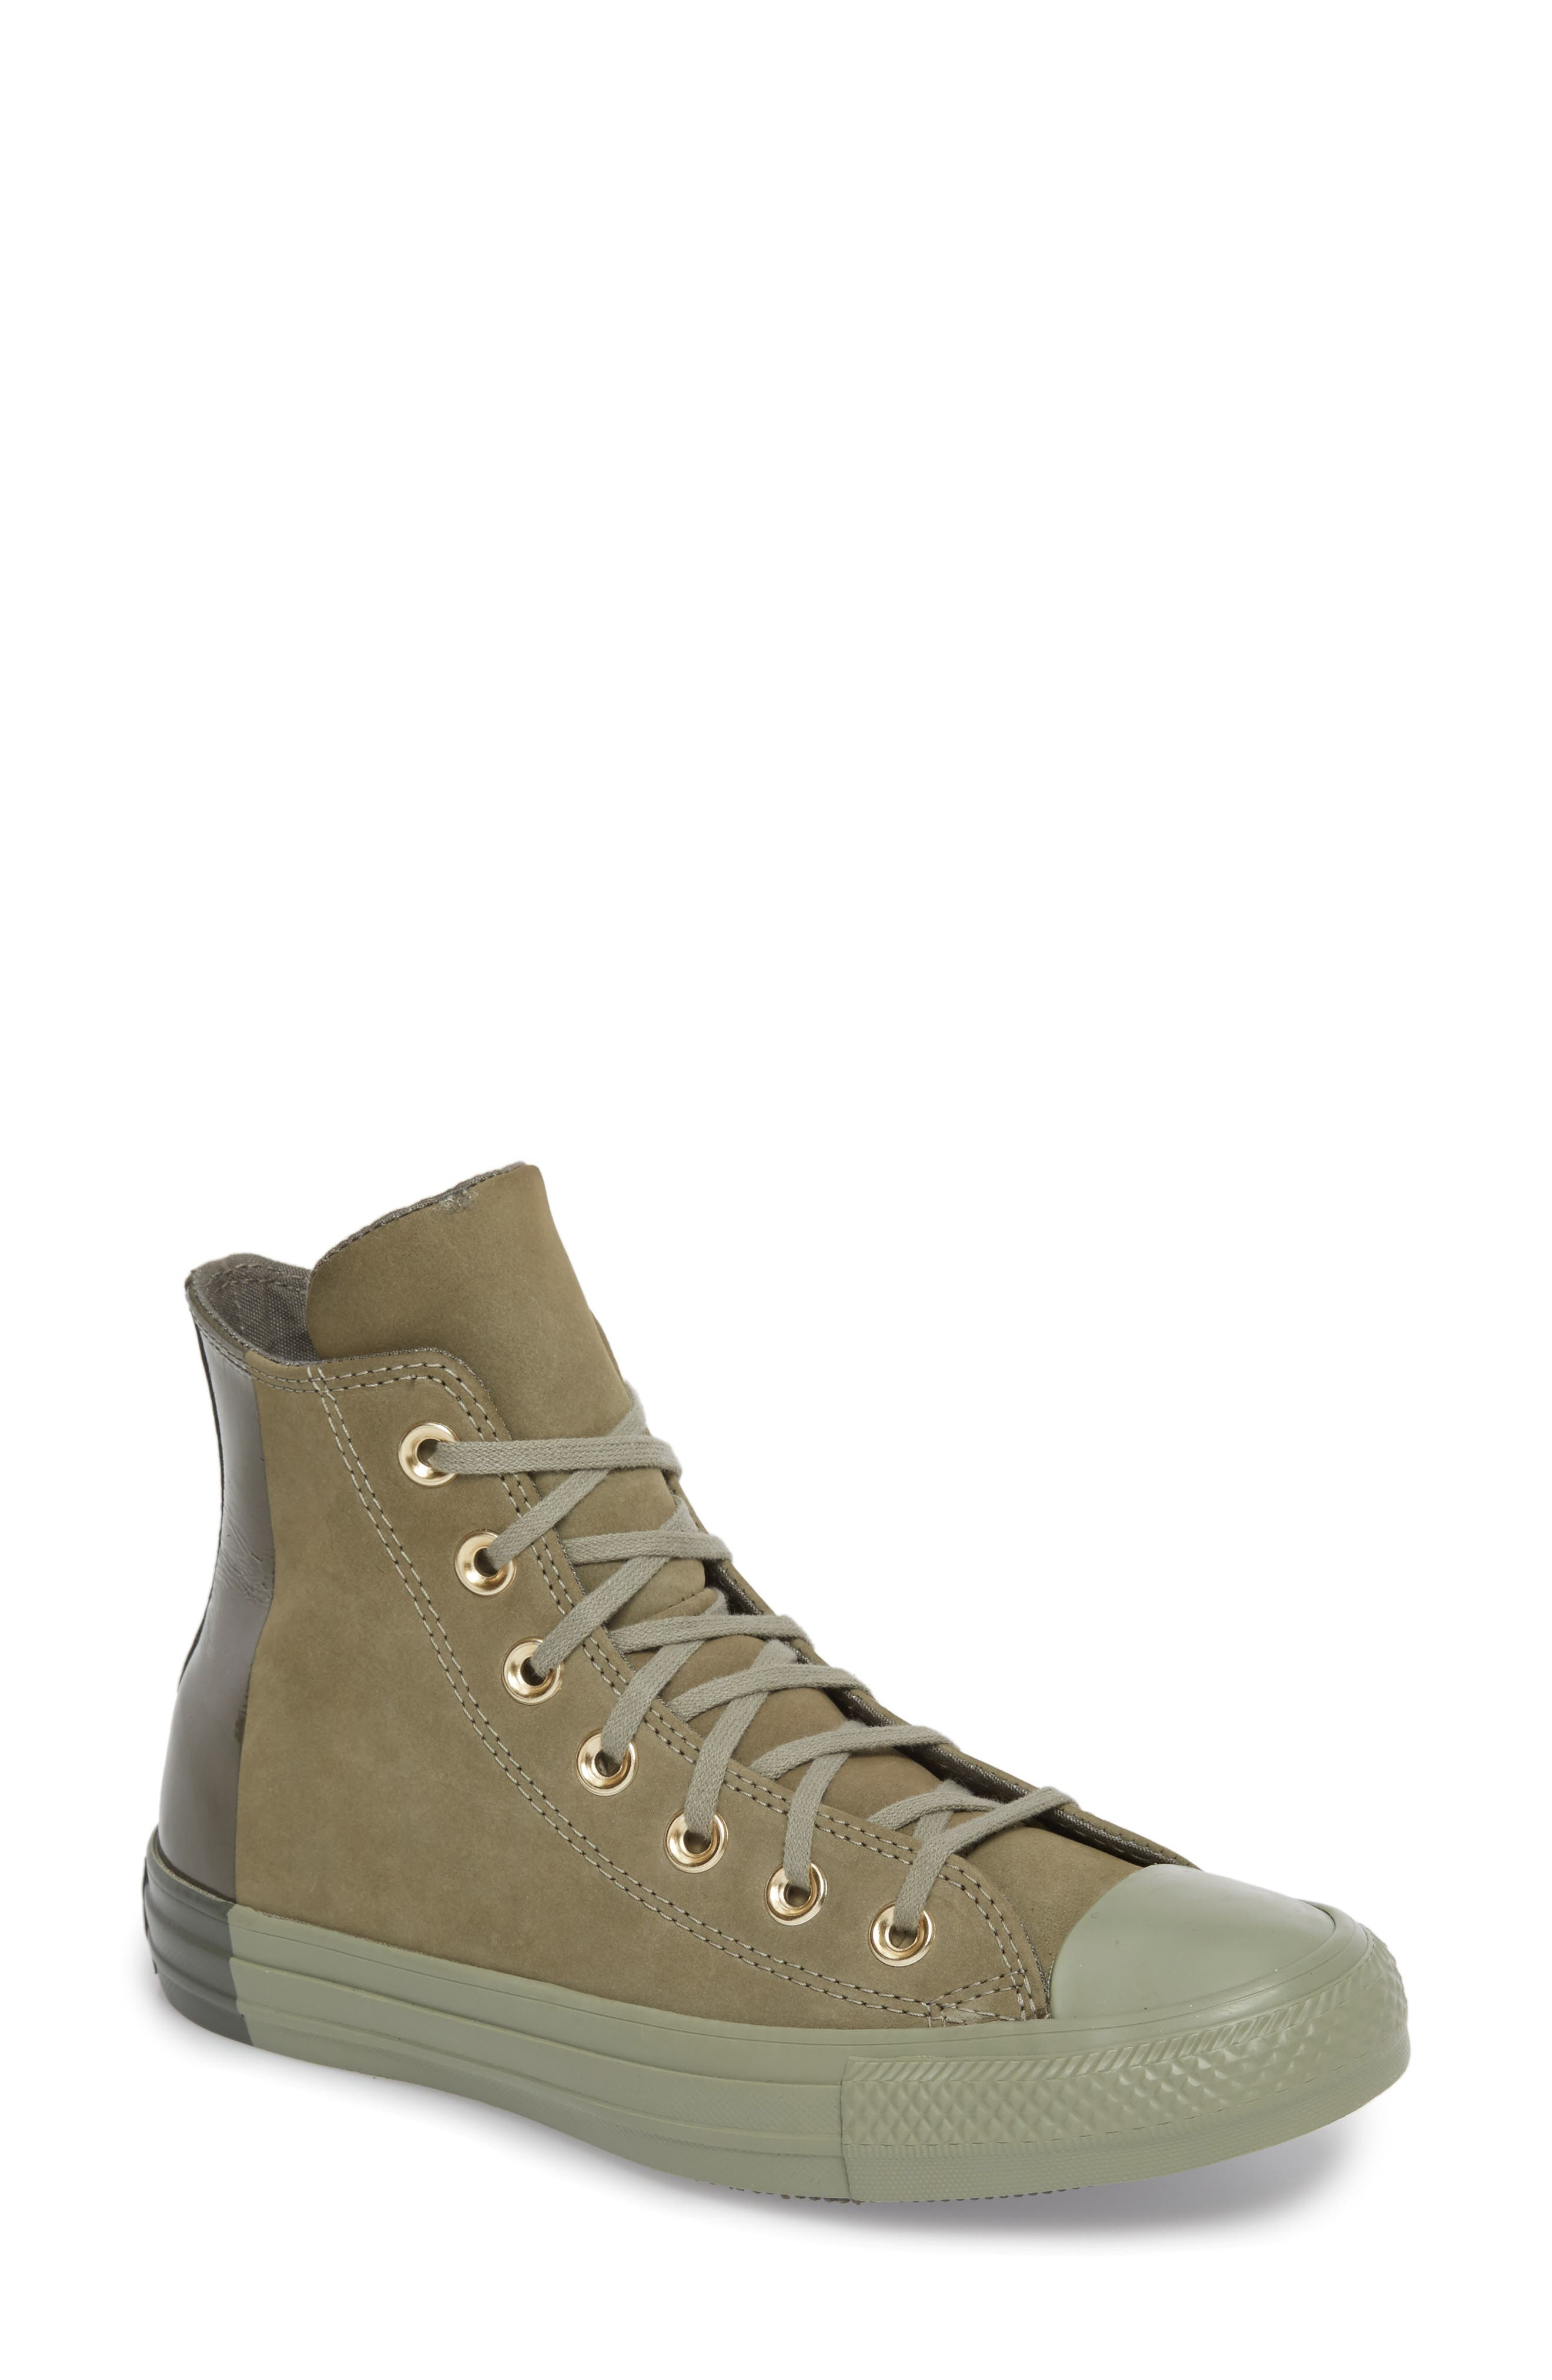 Chuck Taylor<sup>®</sup> All Star<sup>®</sup> High Top Sneaker,                         Main,                         color, 024